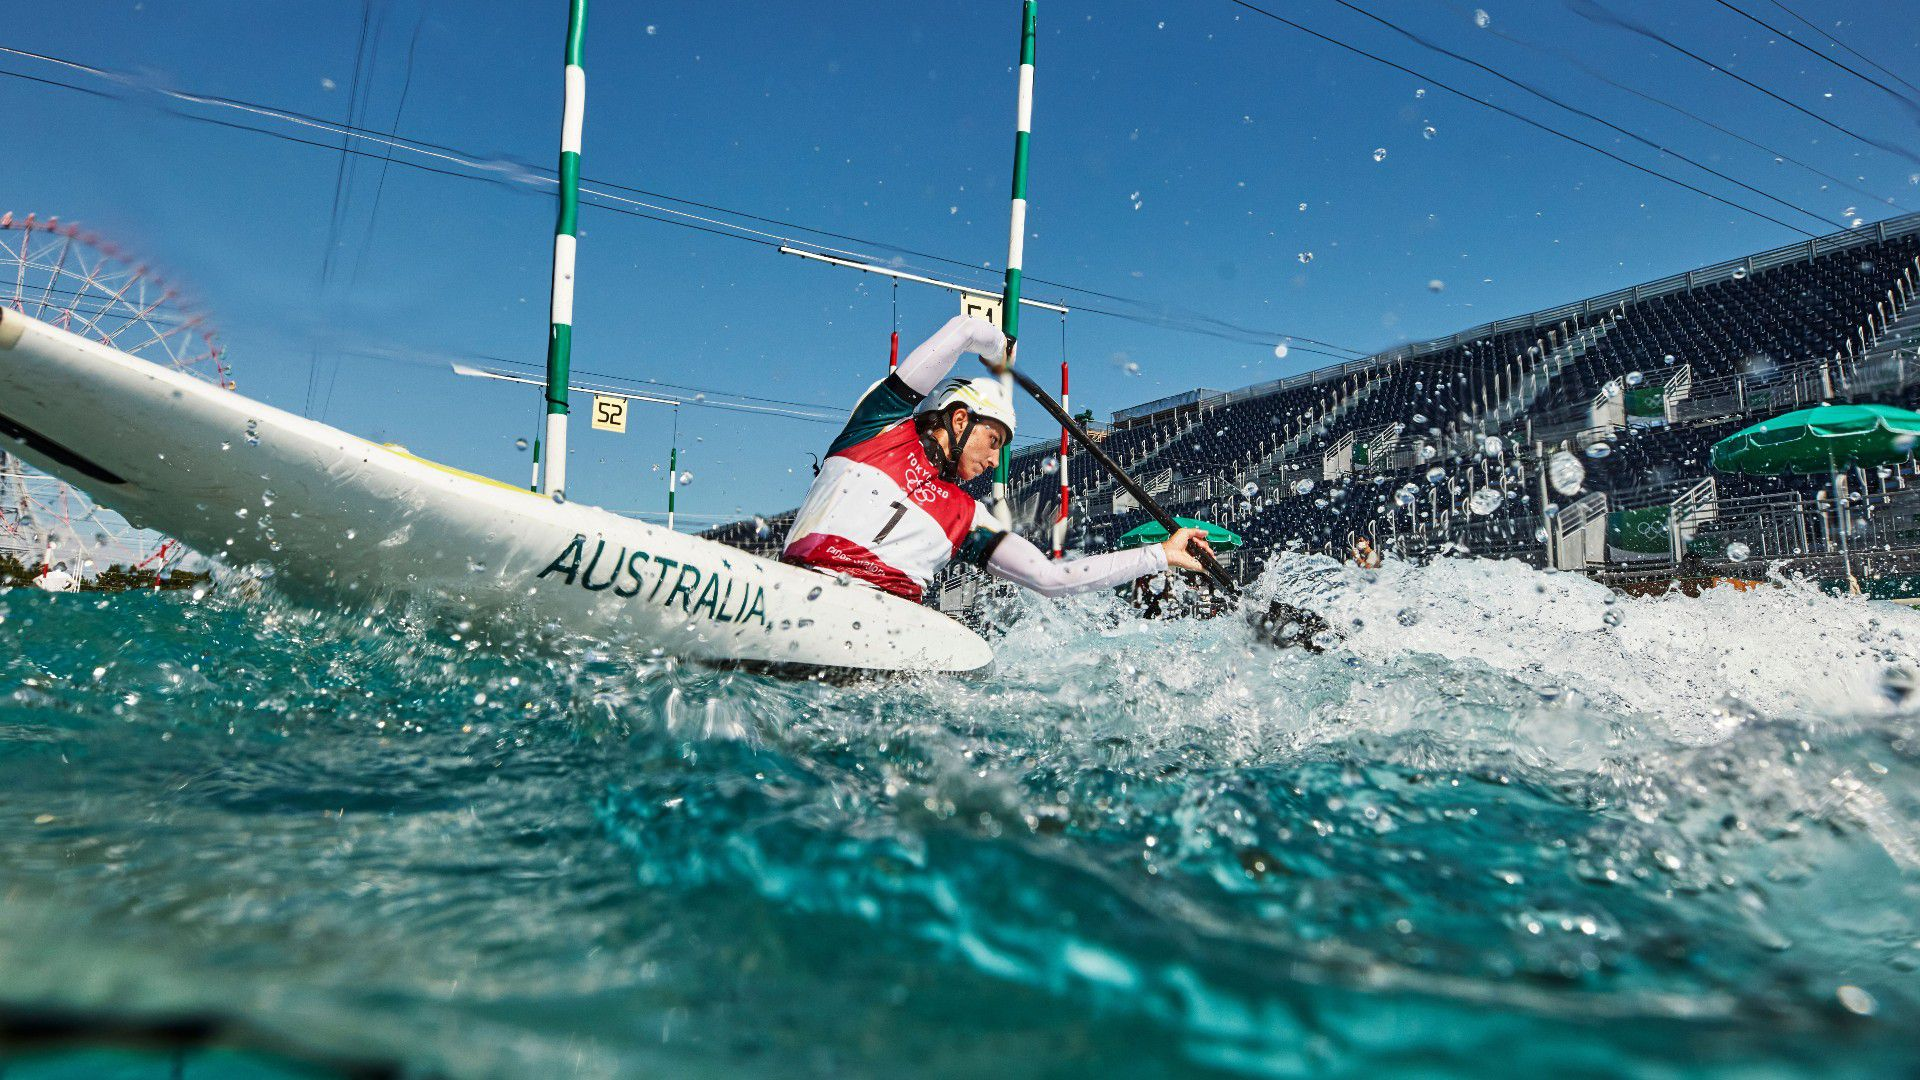 Fox in battle with German rival for kayaking gold